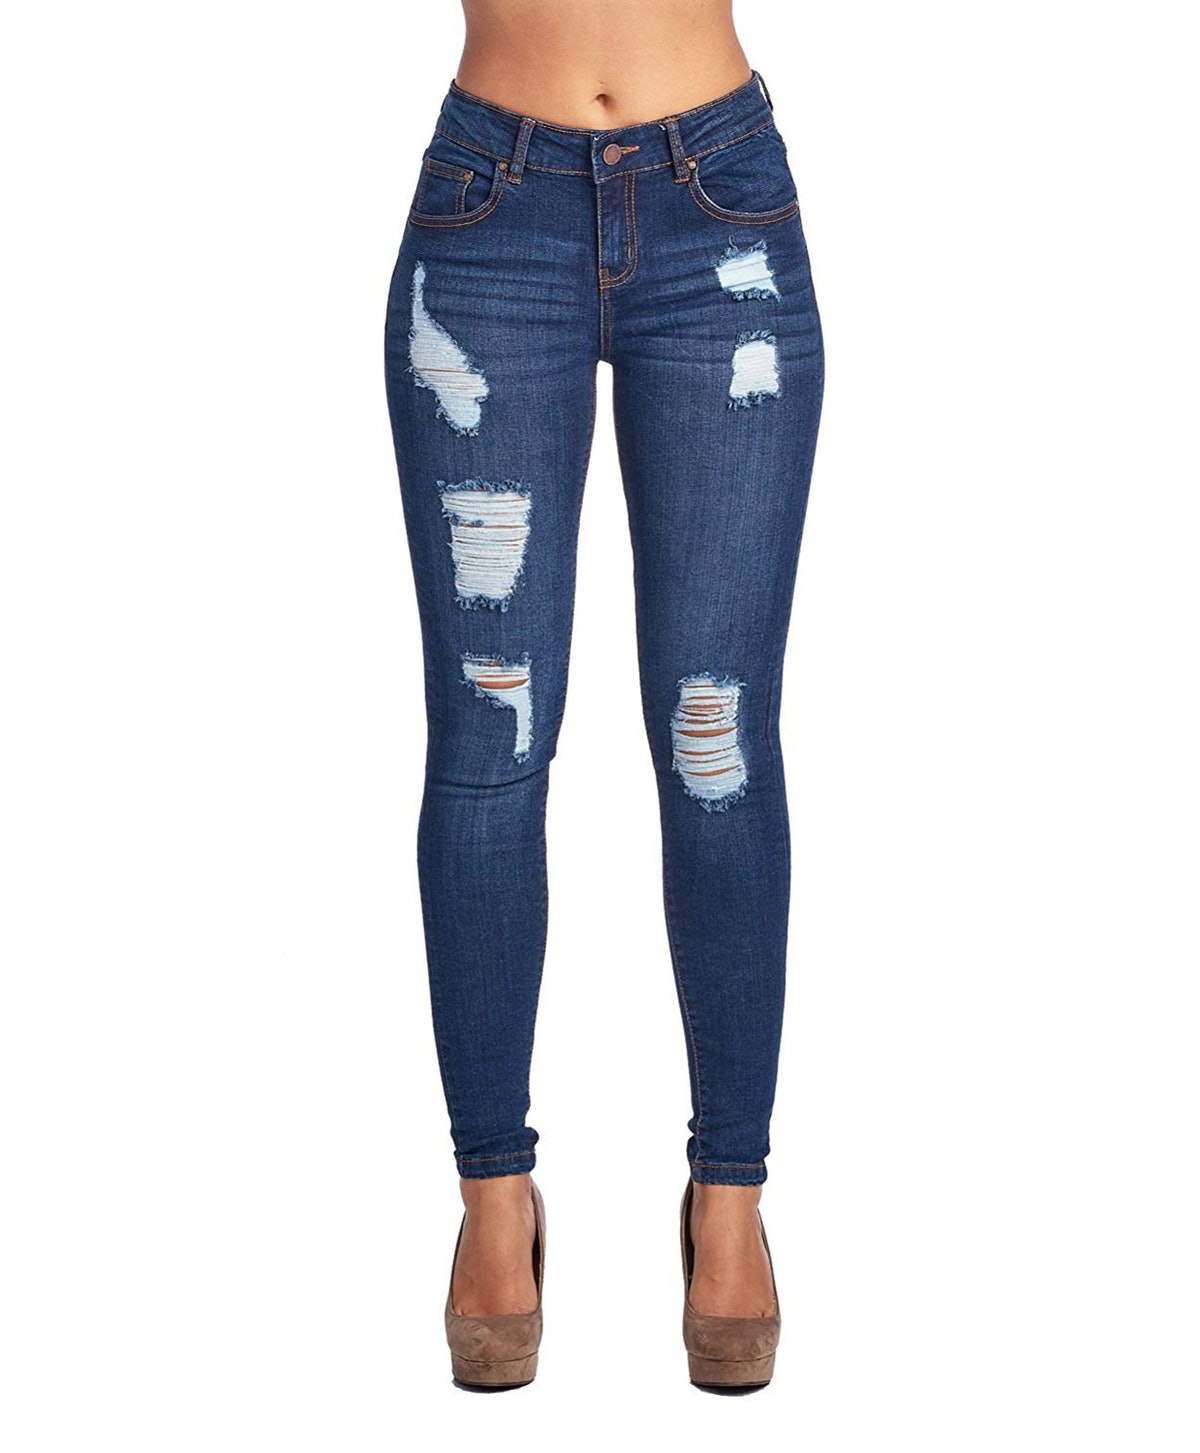 ICONICC Women's Butt-Lifting Destroyed Skinny Jeans